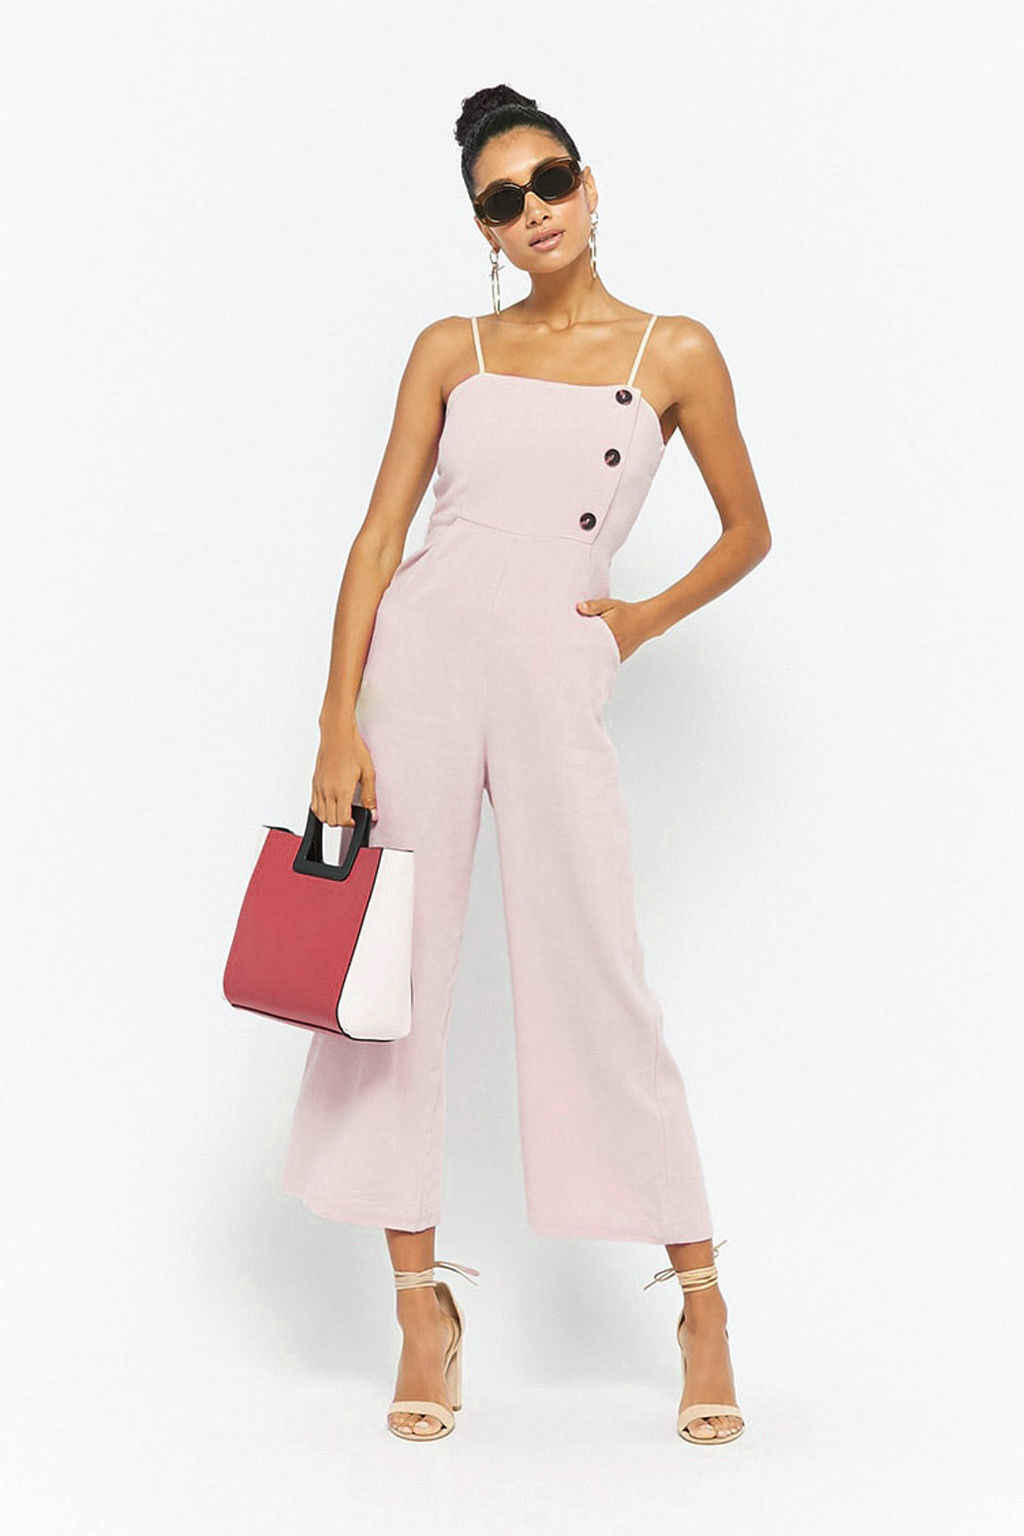 5c4c0eae221d Elegant Sexy Spaghetti Strap Rompers Womens Jumpsuit Sleeveless Backless  High Waist Casual Wide legs Jumpsuits Leotard